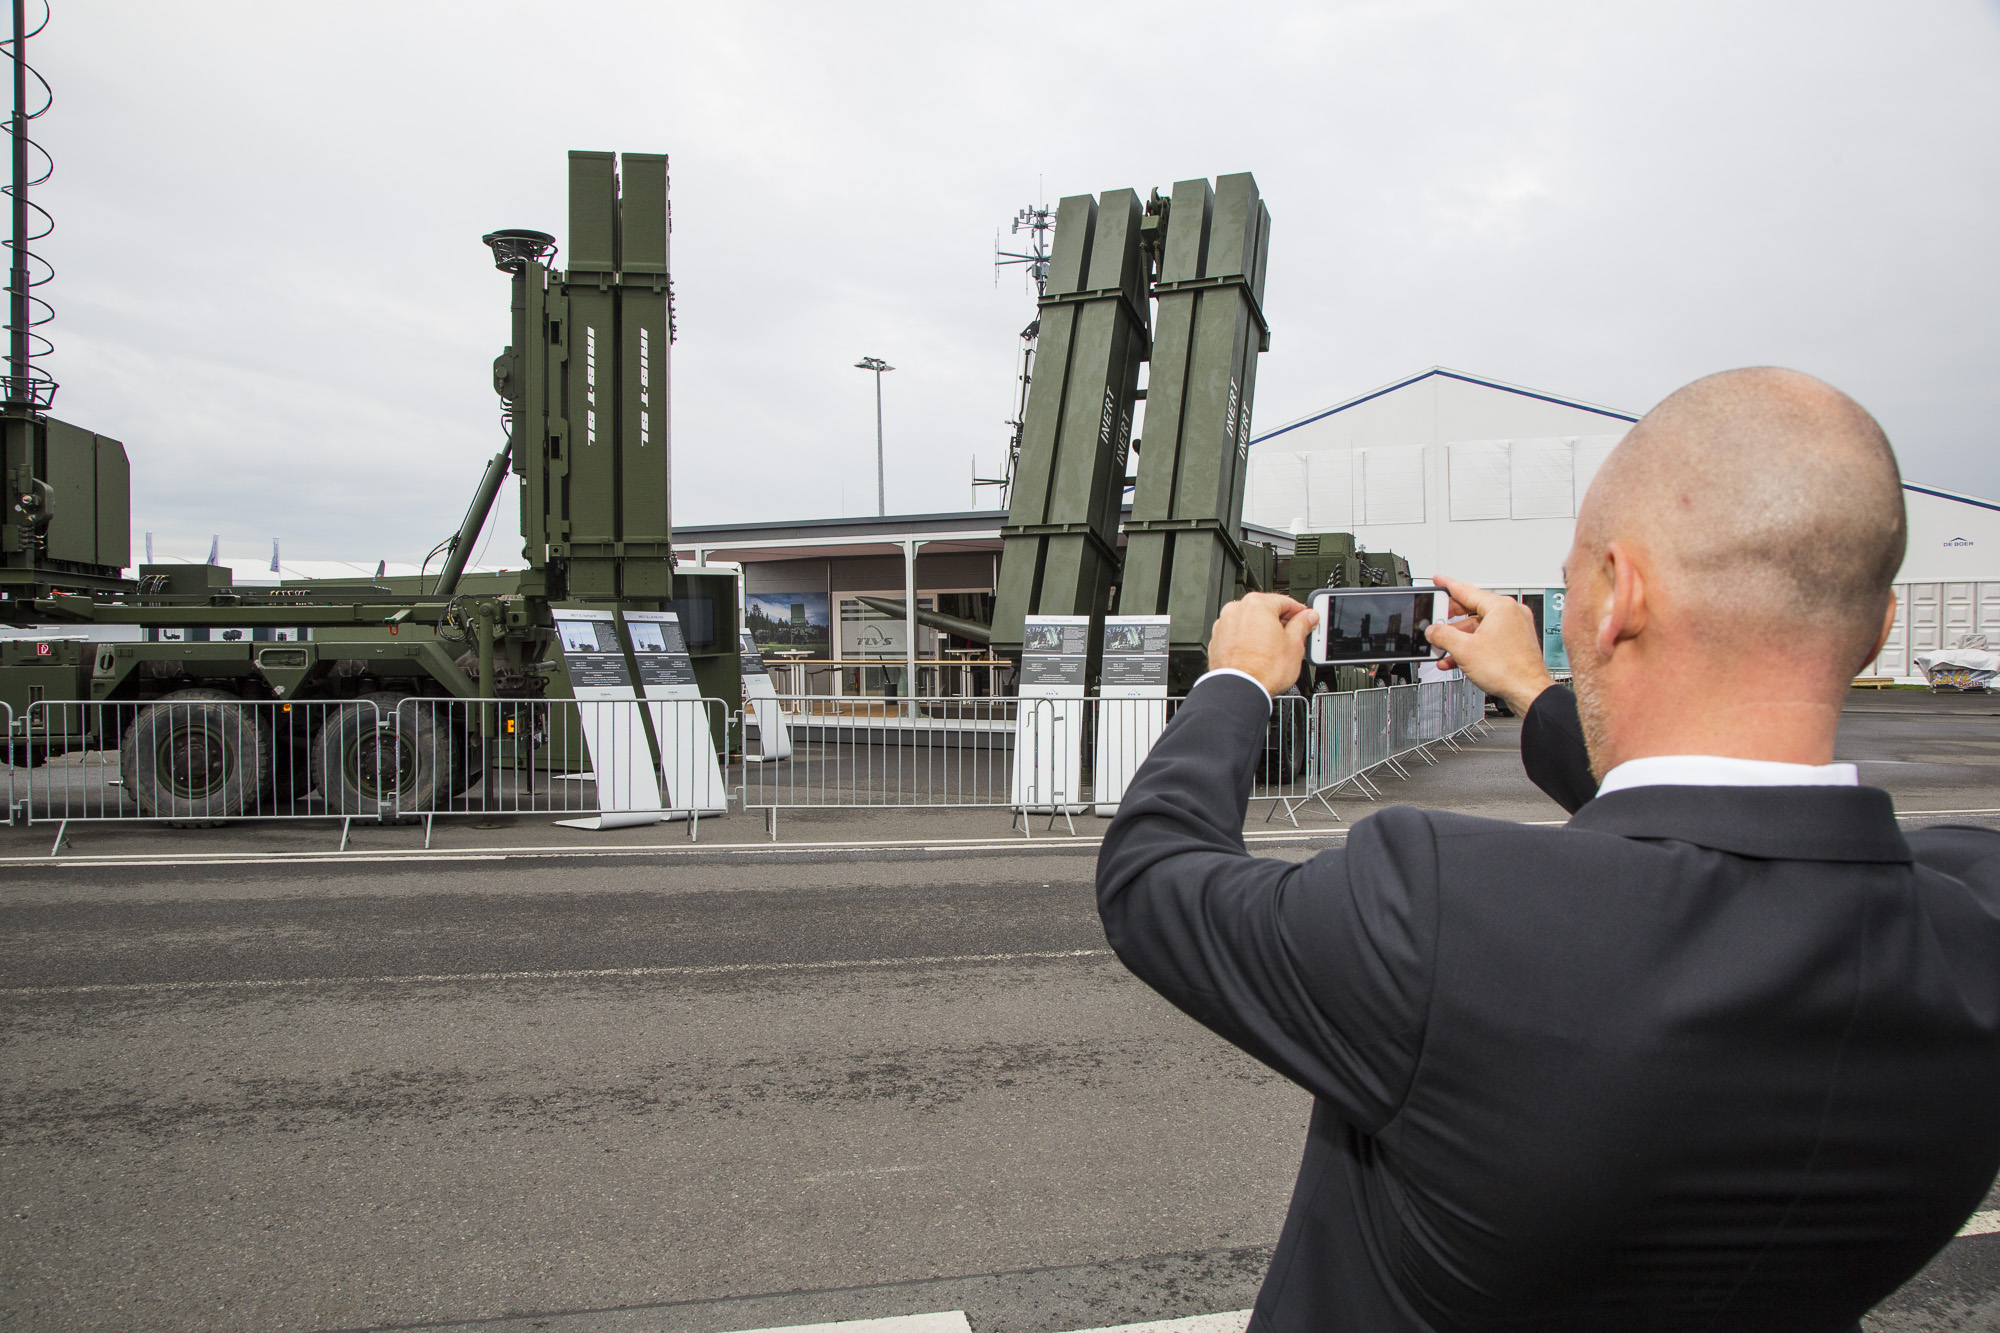 A visitor of the 2018 Berlin Air Show takes a photo of TLVS hardware displayed on the tarmac at Schoenefeld Airport in April 2018. (Lockheed Martin)